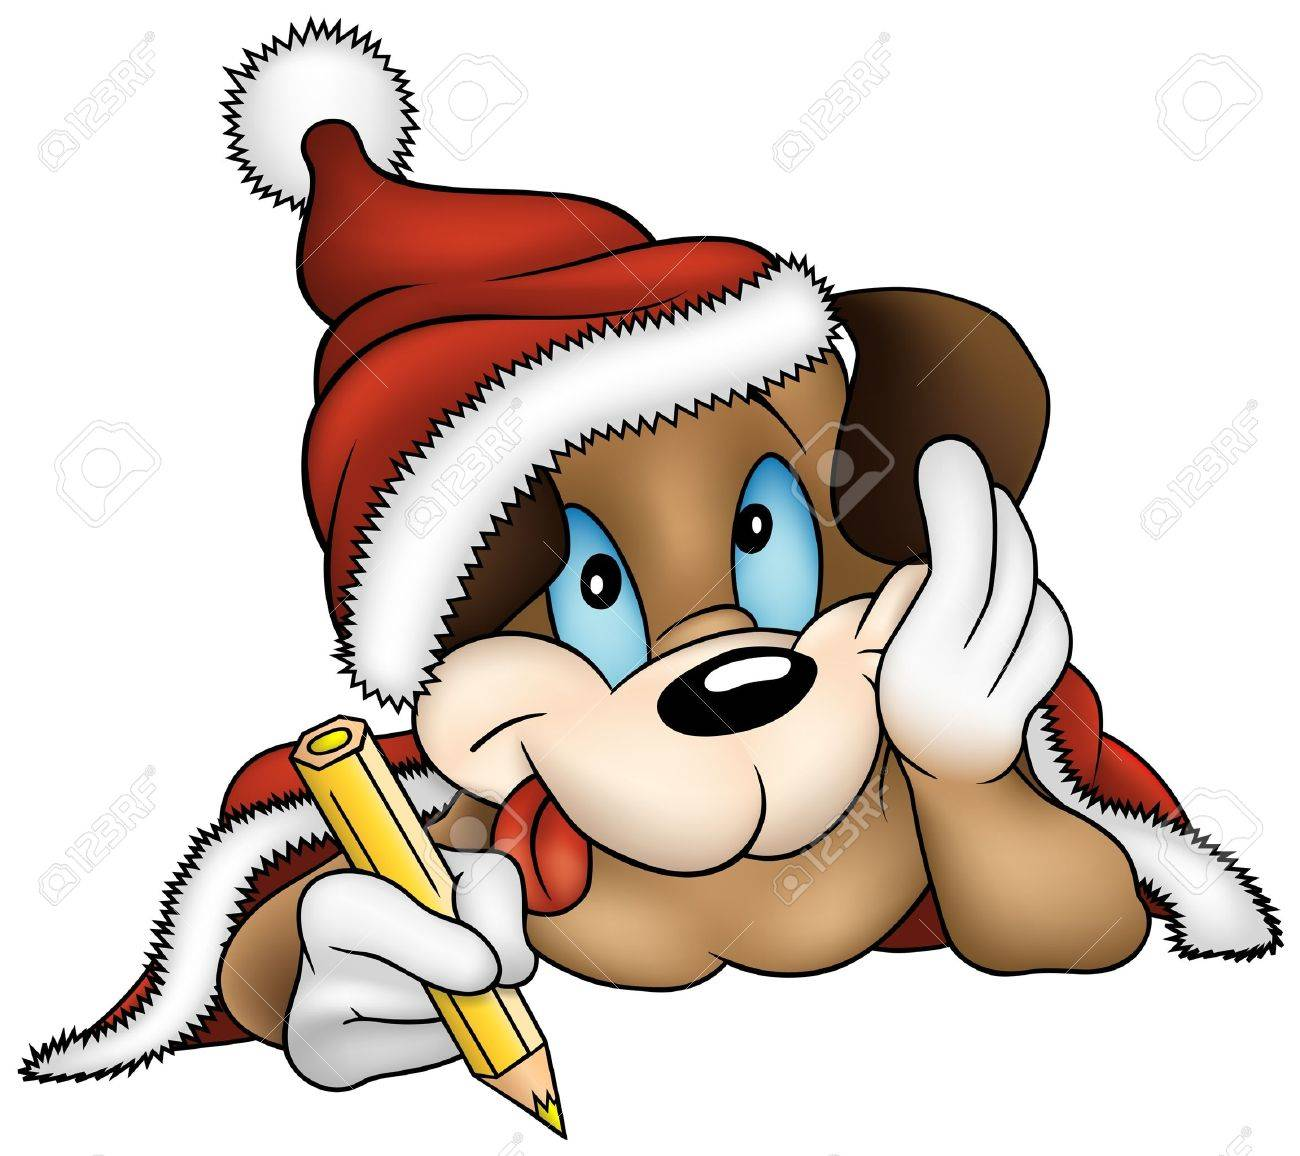 Christmas And Puppy Dog Vector Cartoons Illustration Royalty Free Cliparts Vectors And Stock Illustration Image 1769553